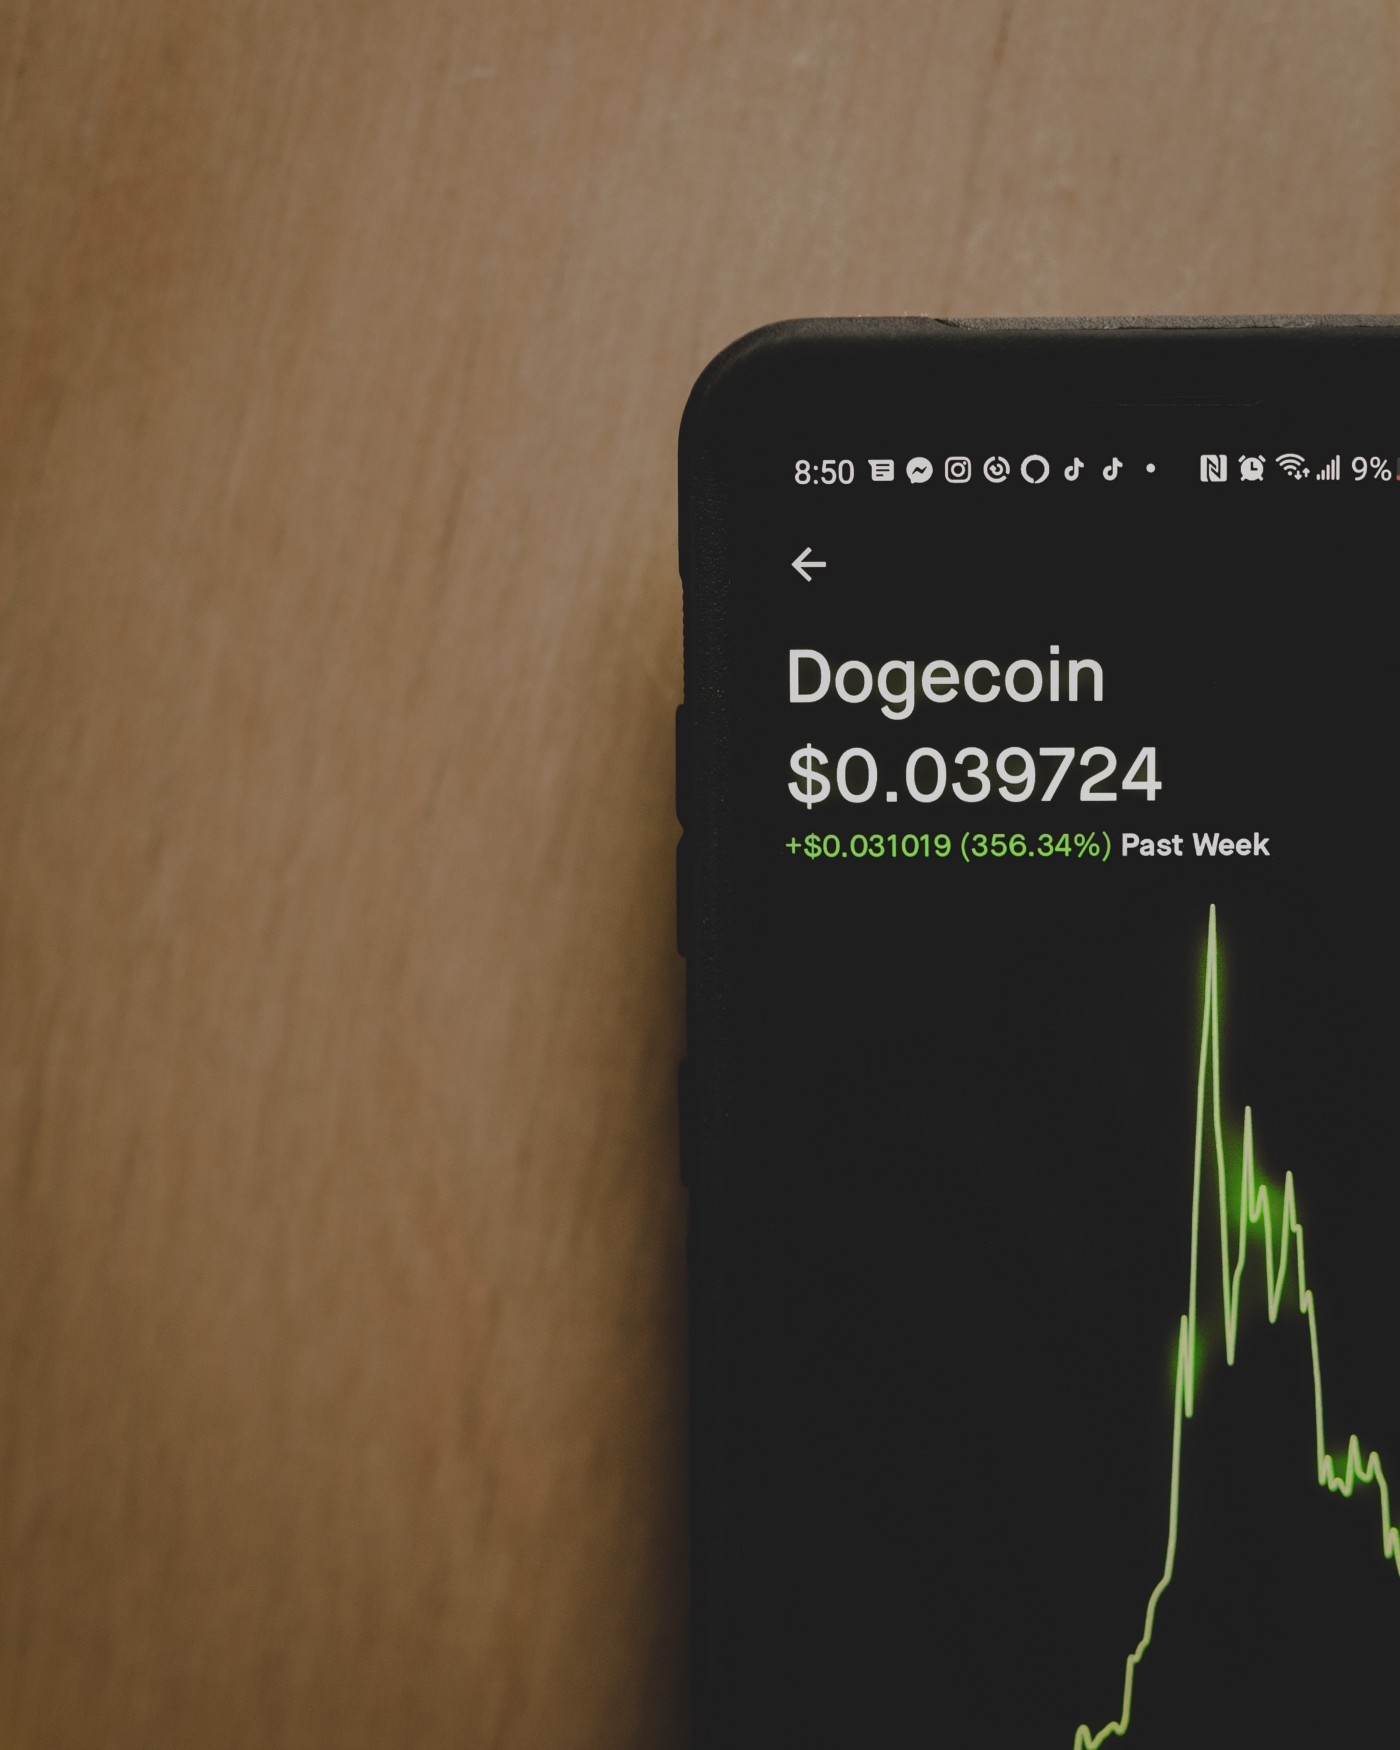 a smartphone showing the Dogecoin price on its screen